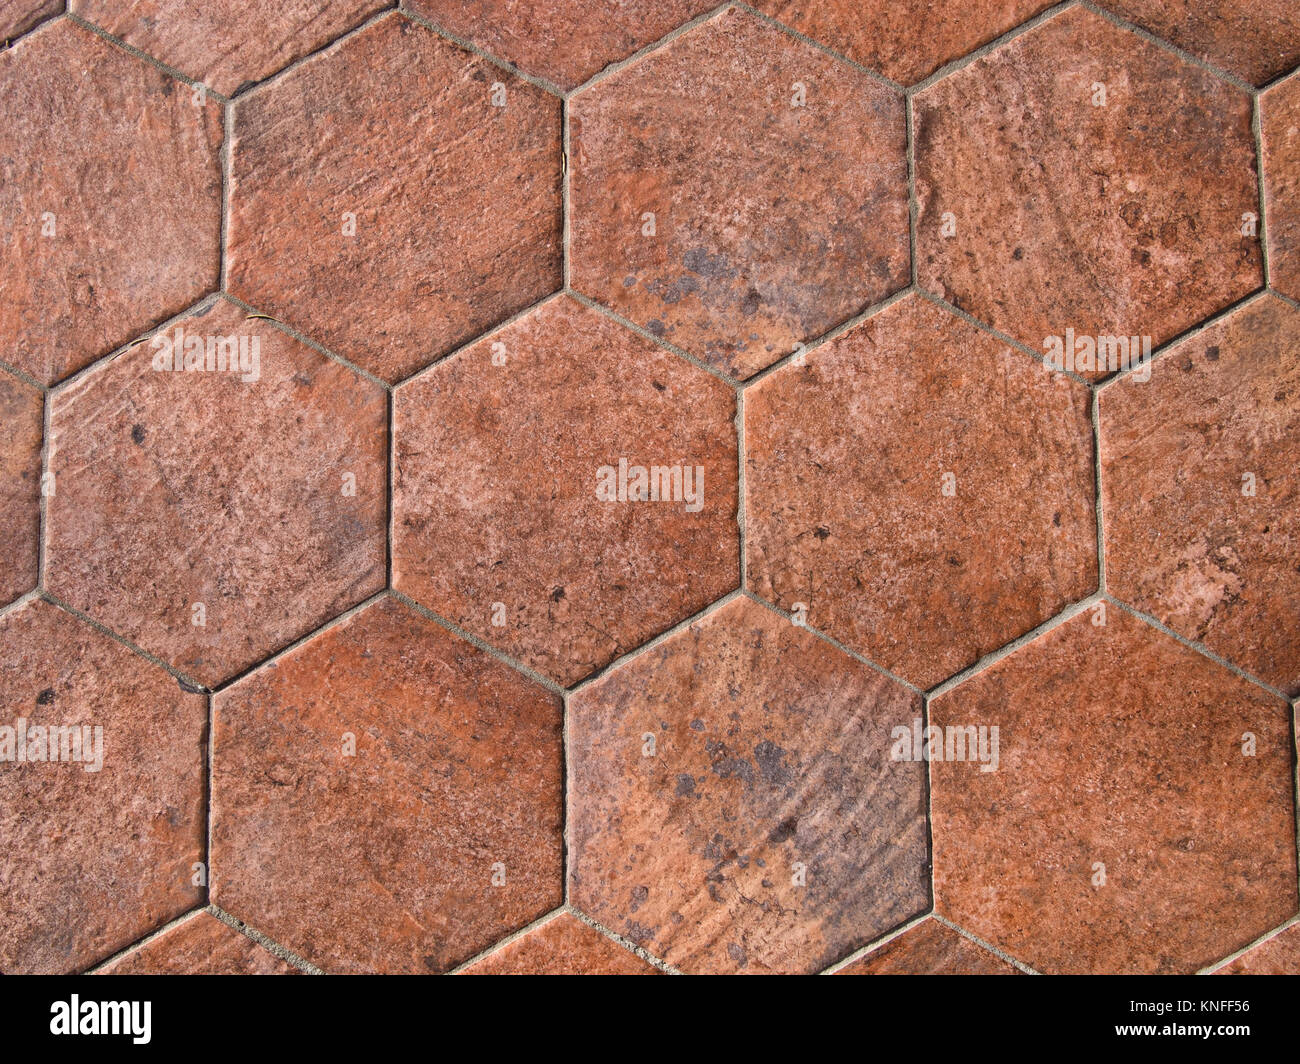 Hexagonal terracotta floor tile